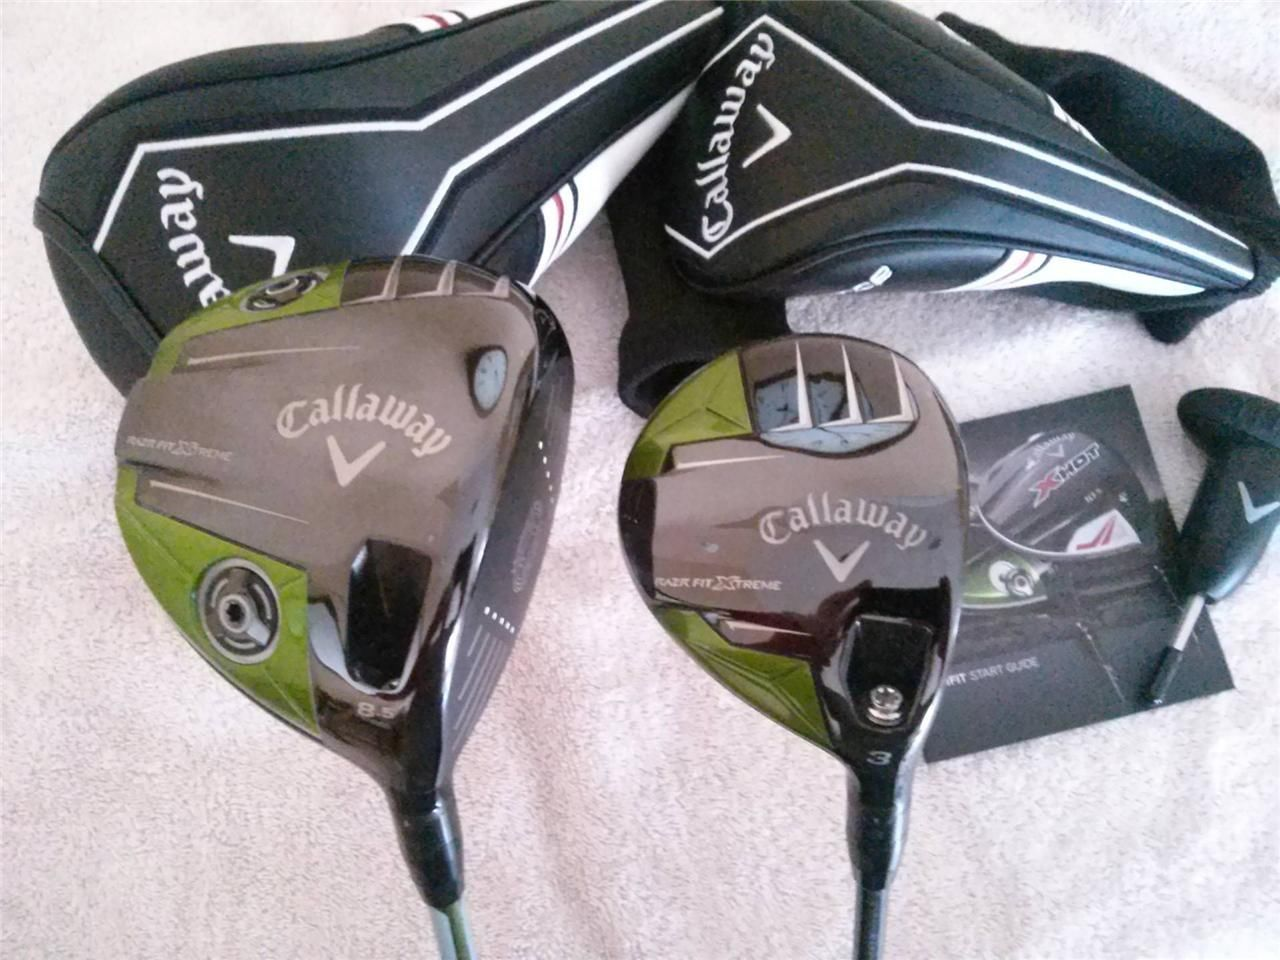 Brand New Callaway Razr Fit Xtreme Driver And 3 Wood Golf Clubs